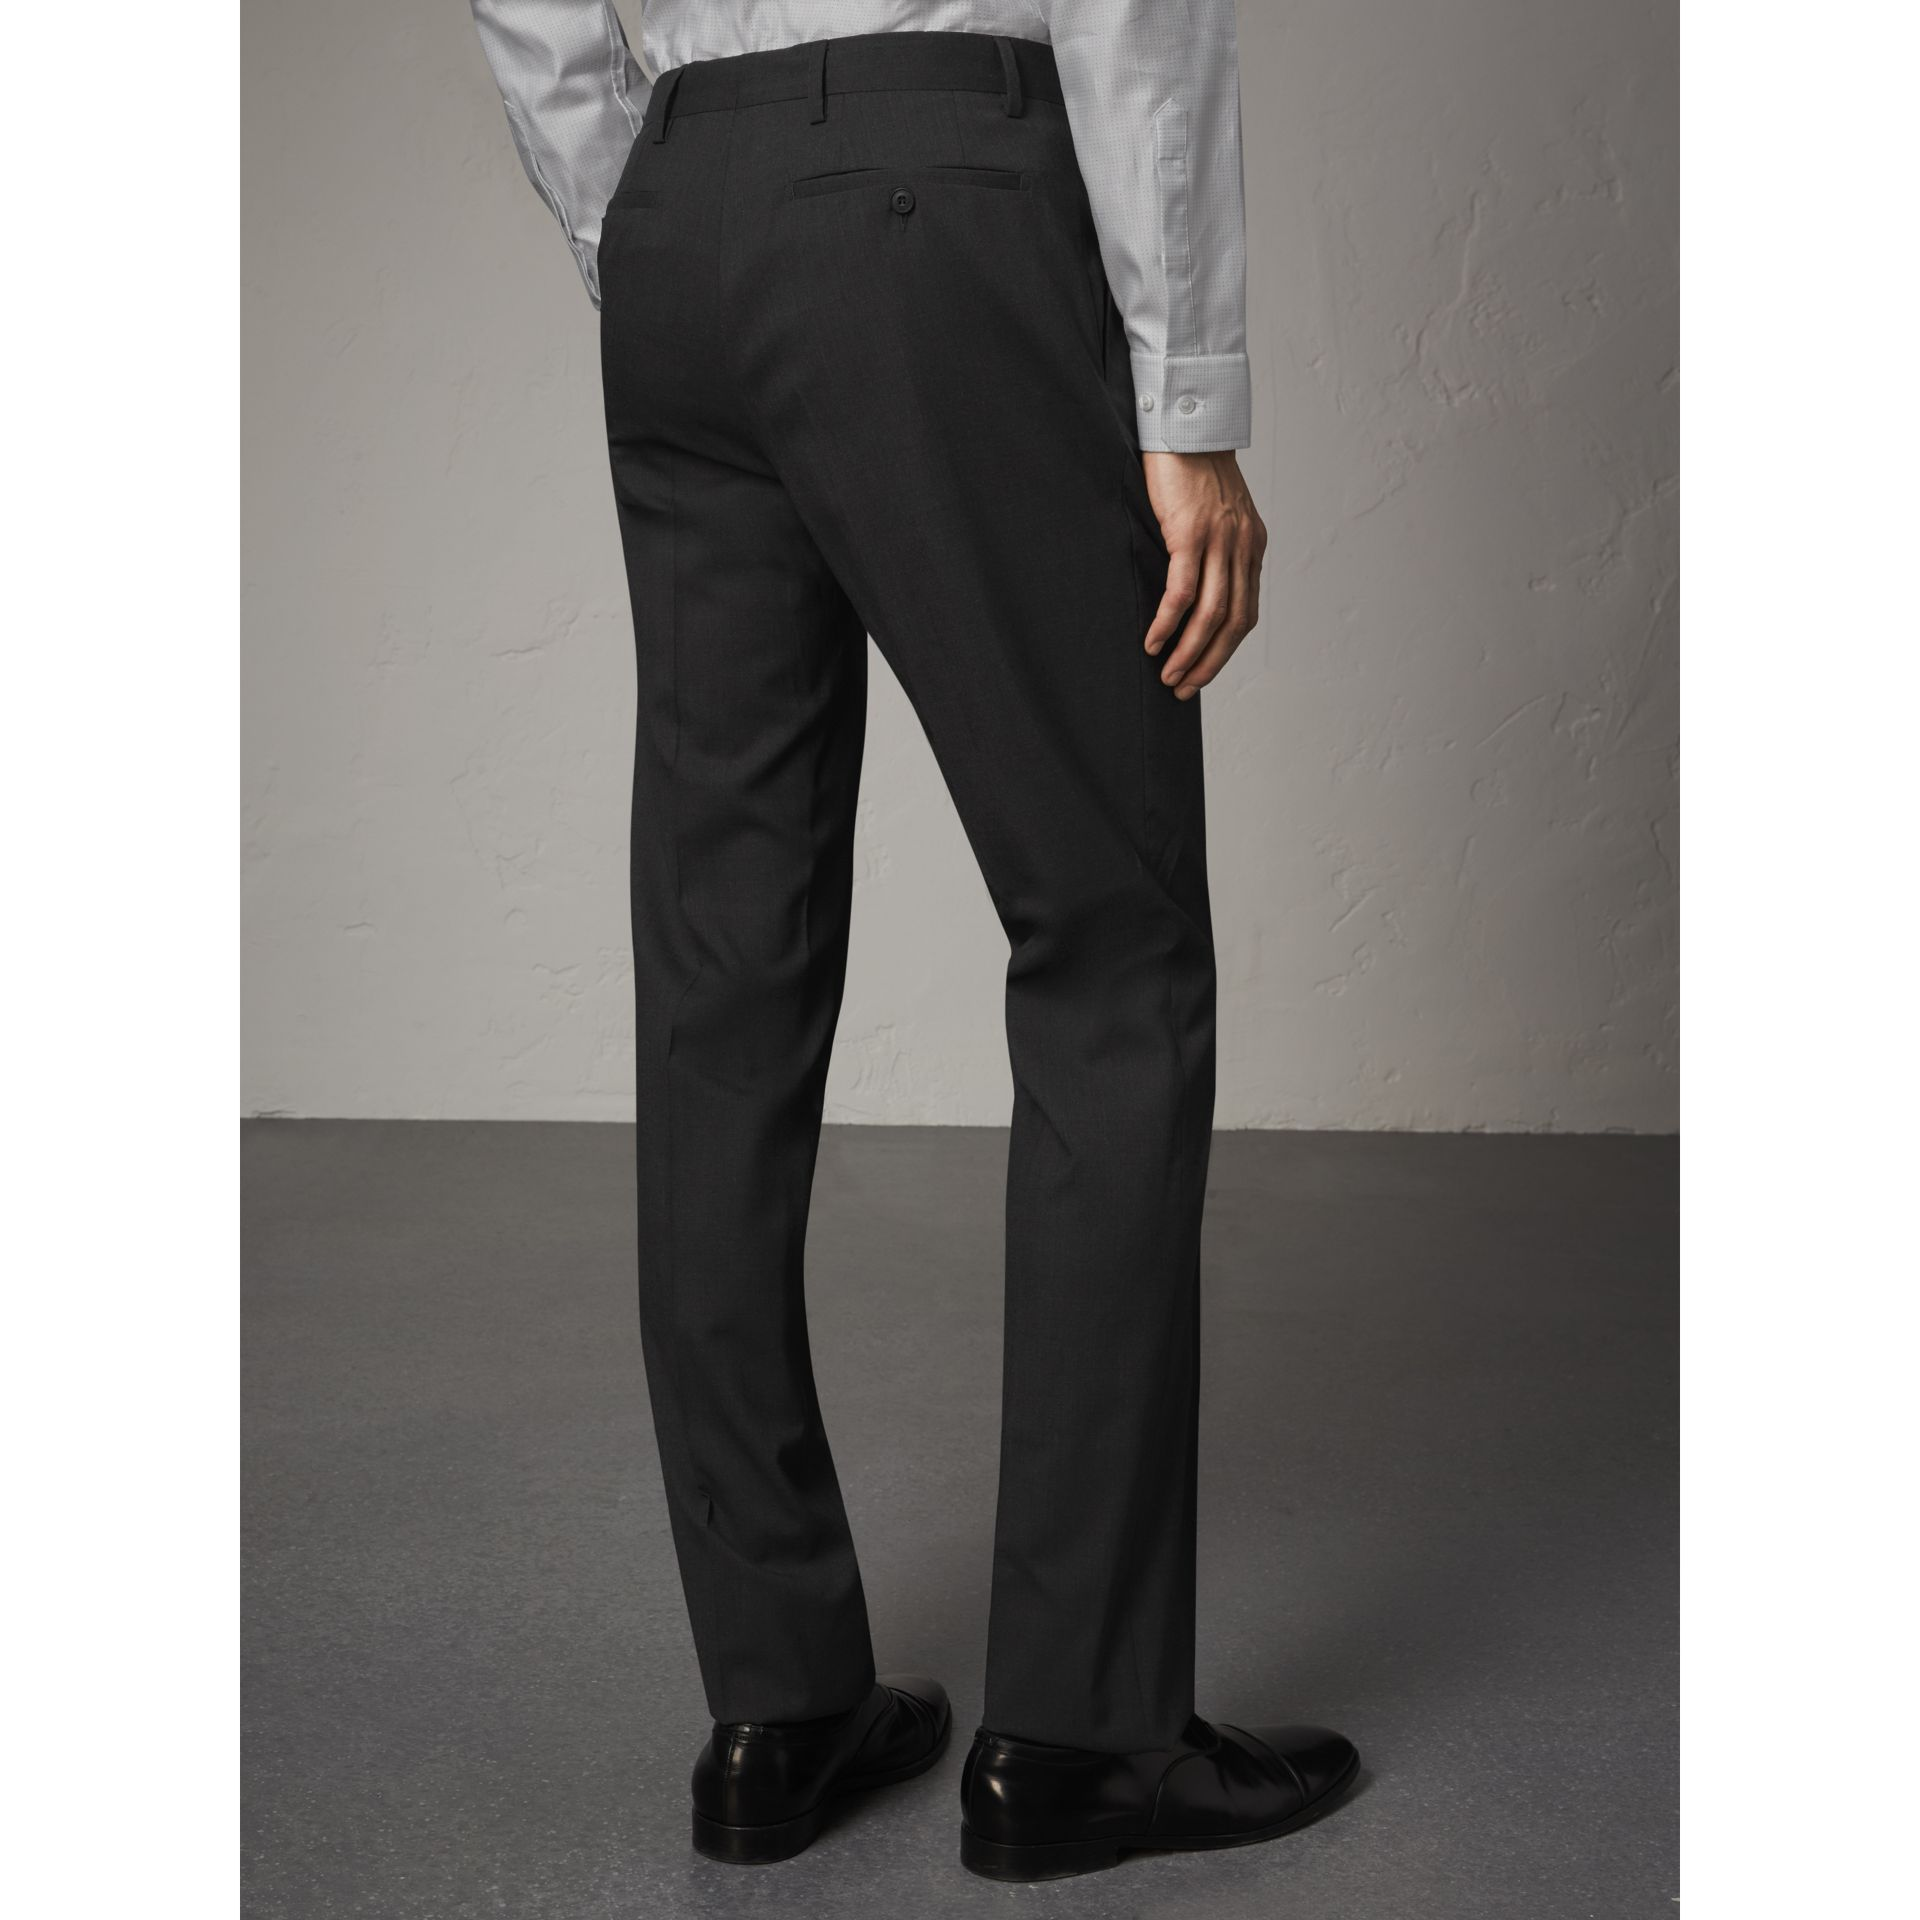 Pantalon de coupe moderne en laine (Anthracite) - Homme | Burberry - photo de la galerie 2